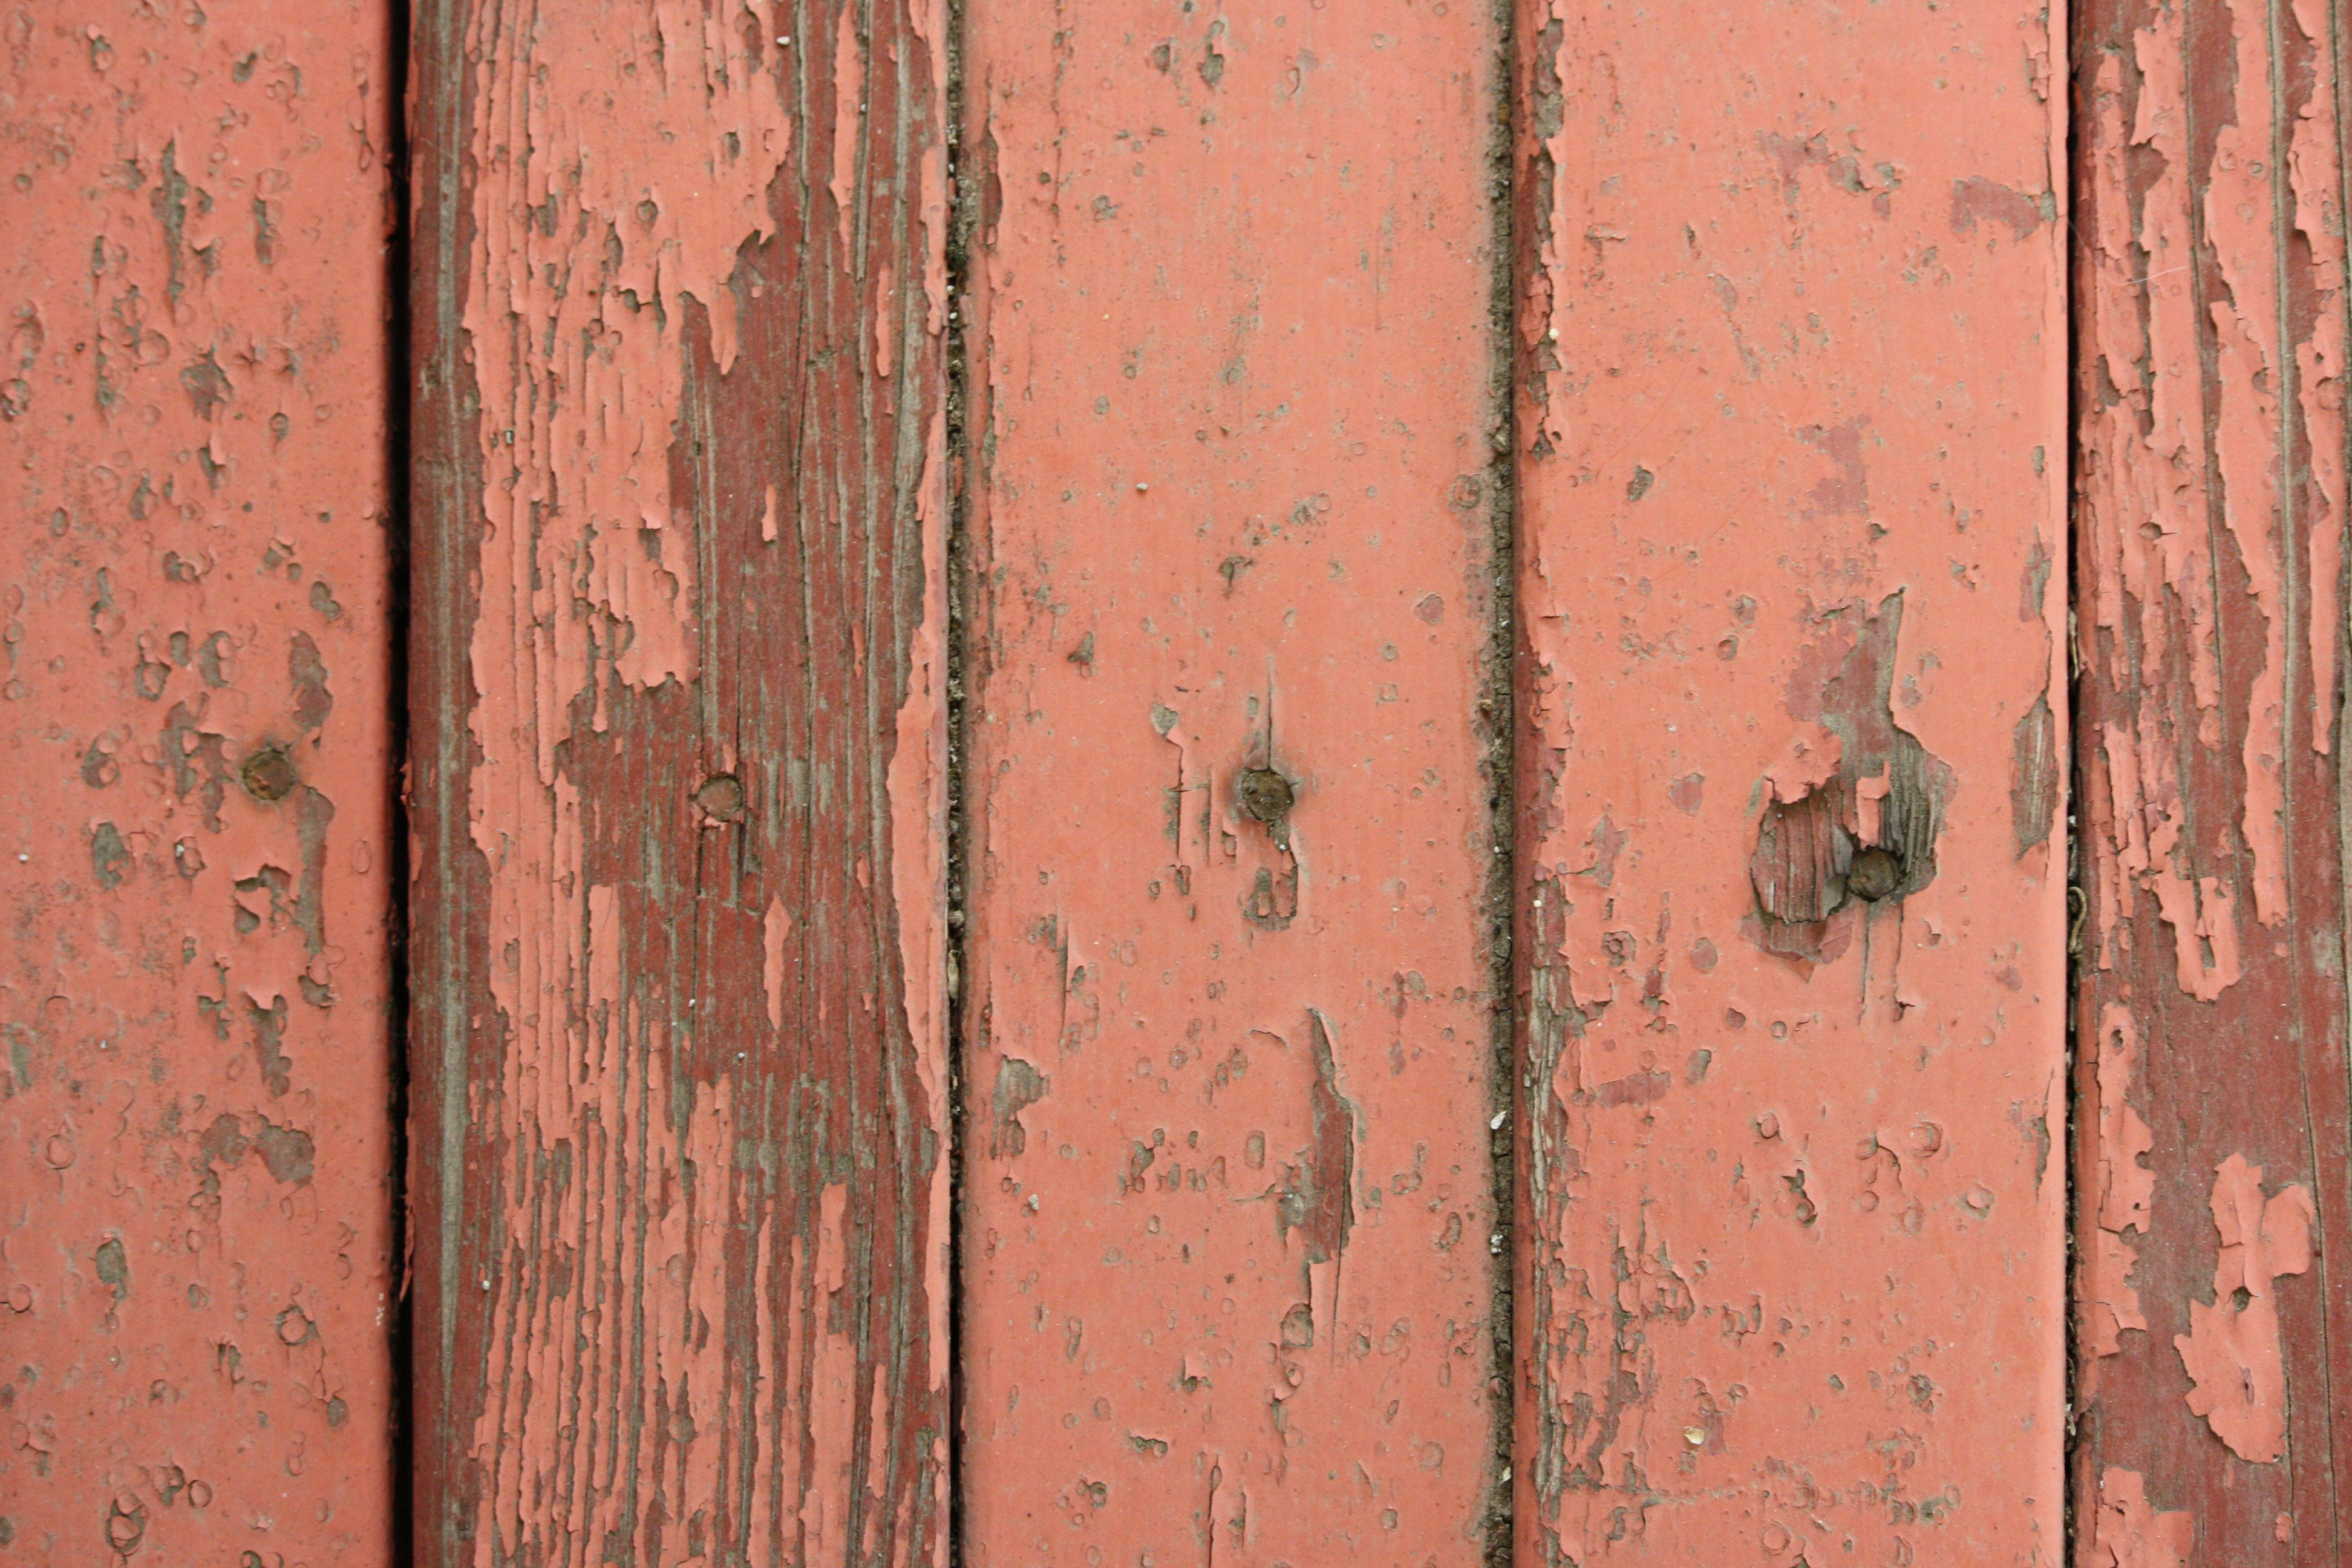 Peeling Red Paint on Old Wooden Boards Texture - Free High ...